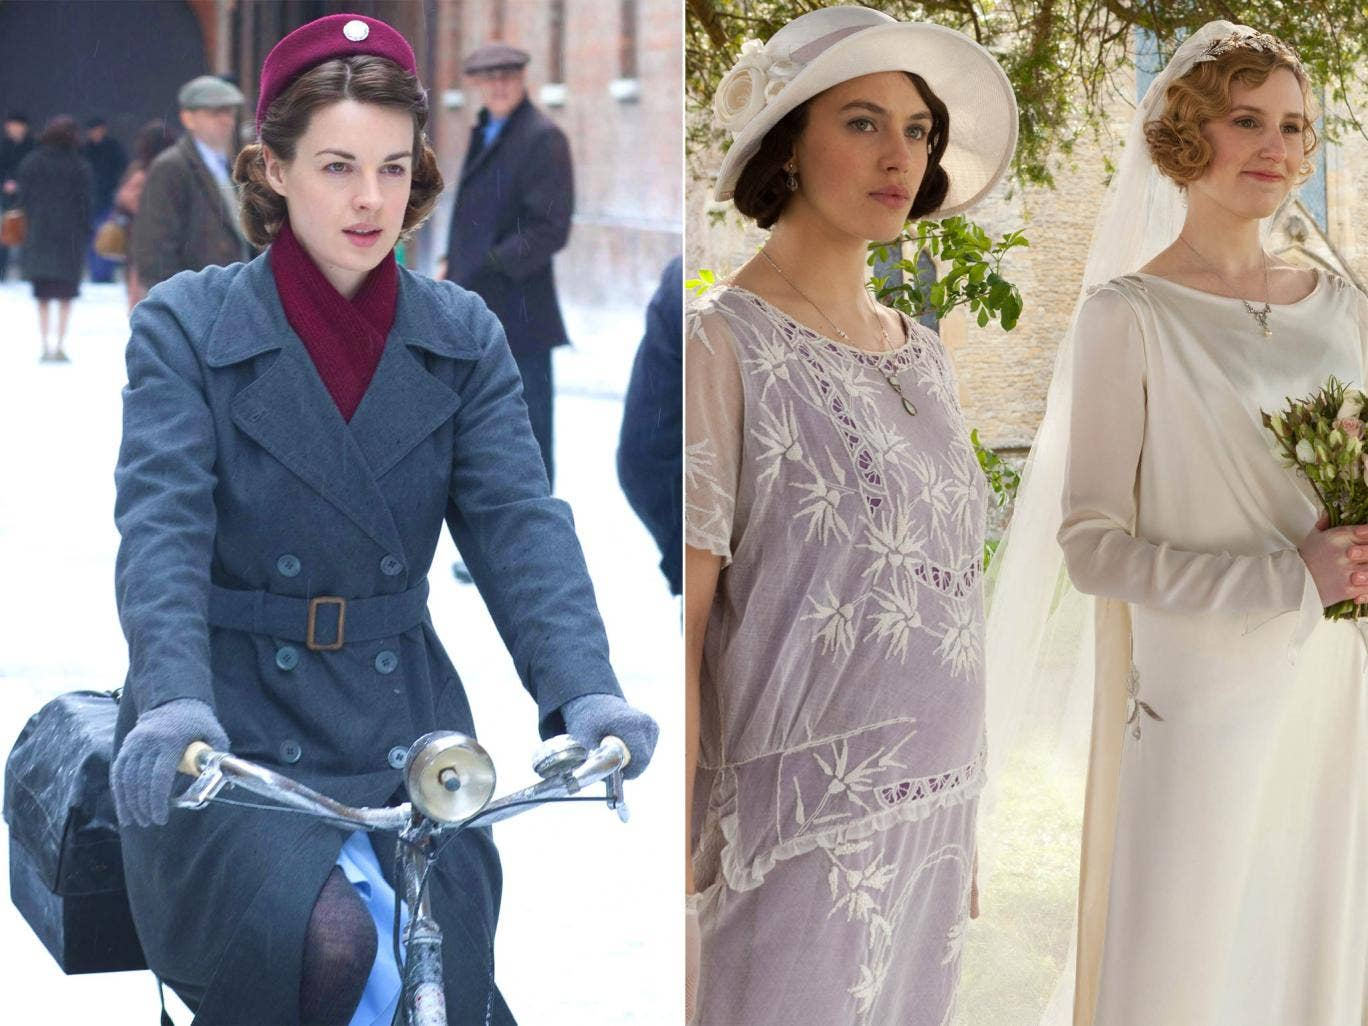 'Call The Midwife' and 'Downton Abbey' will not go head-to-head this Christmas